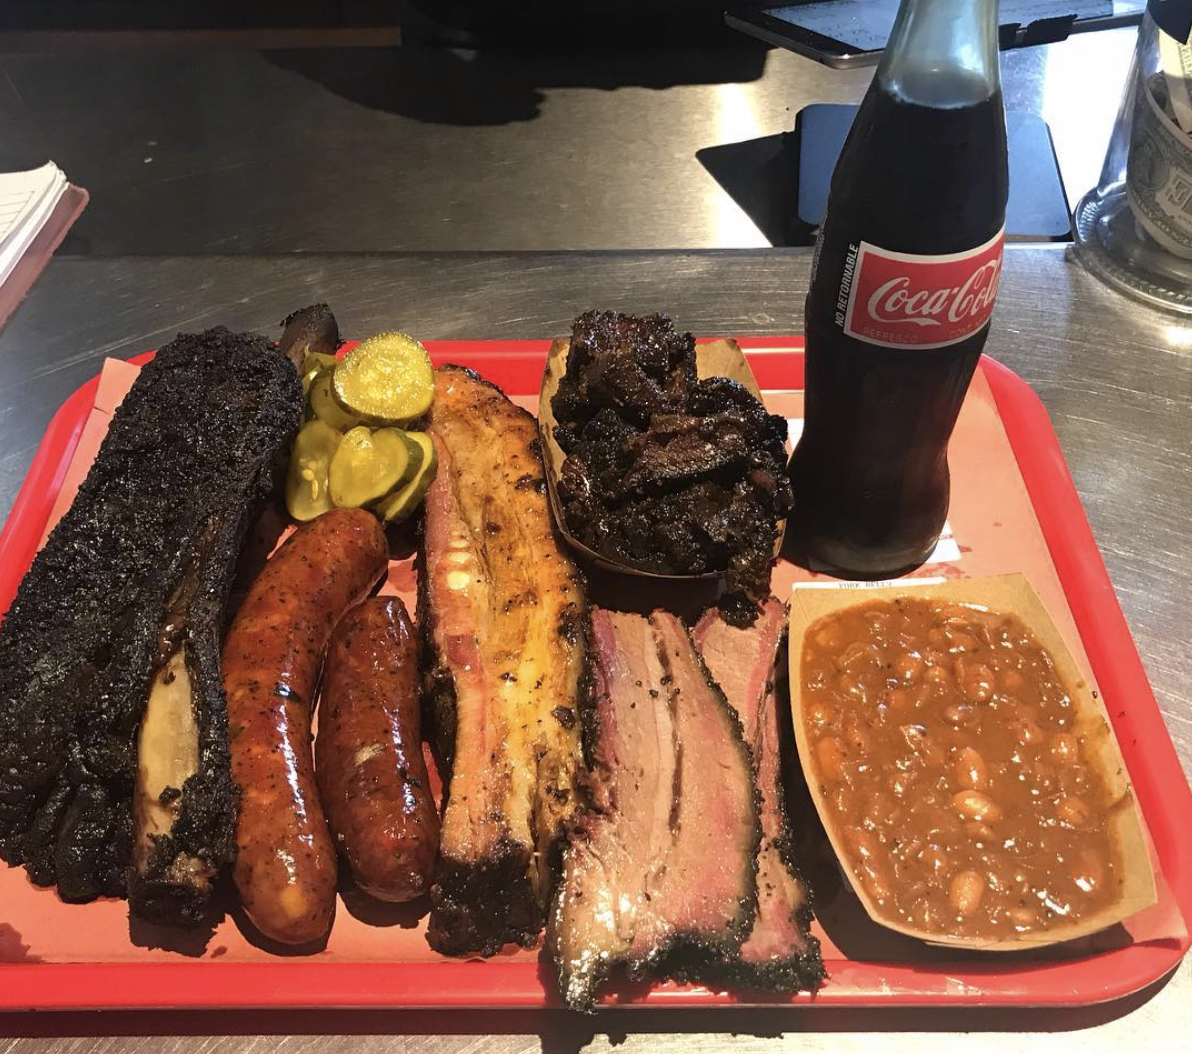 Photo courtesy of @cattleackbbq